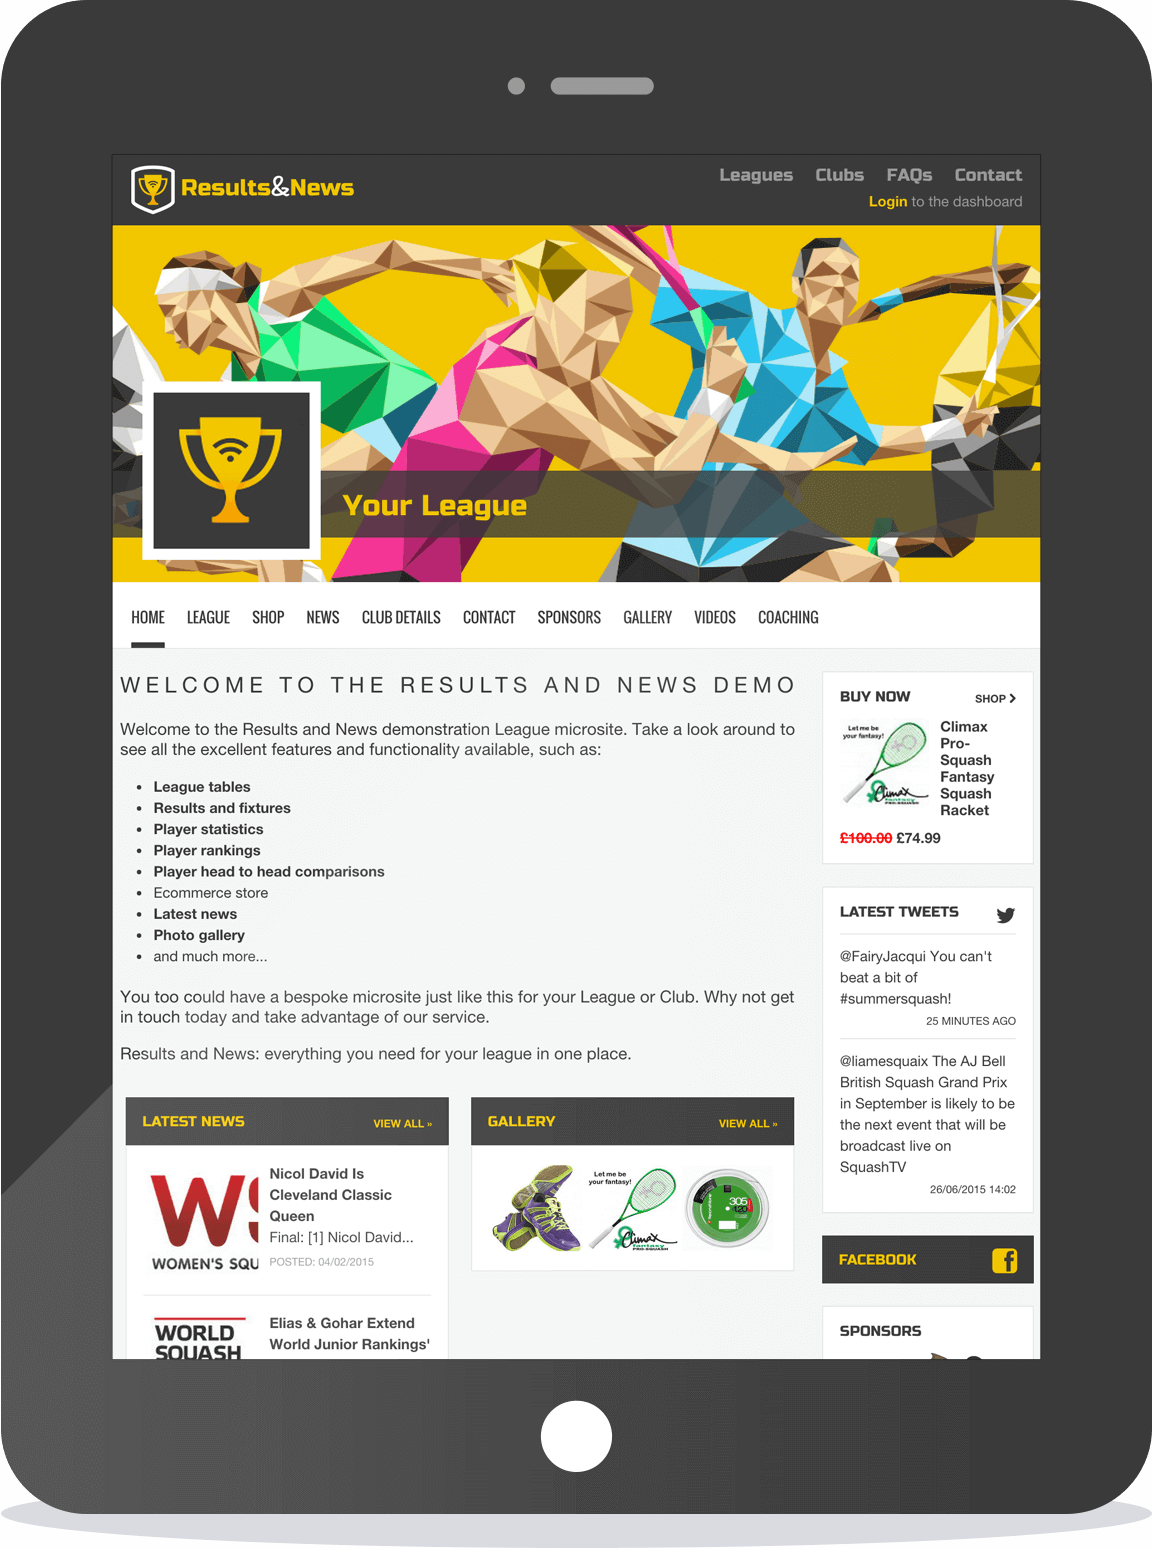 Build bespoke microsites for your league